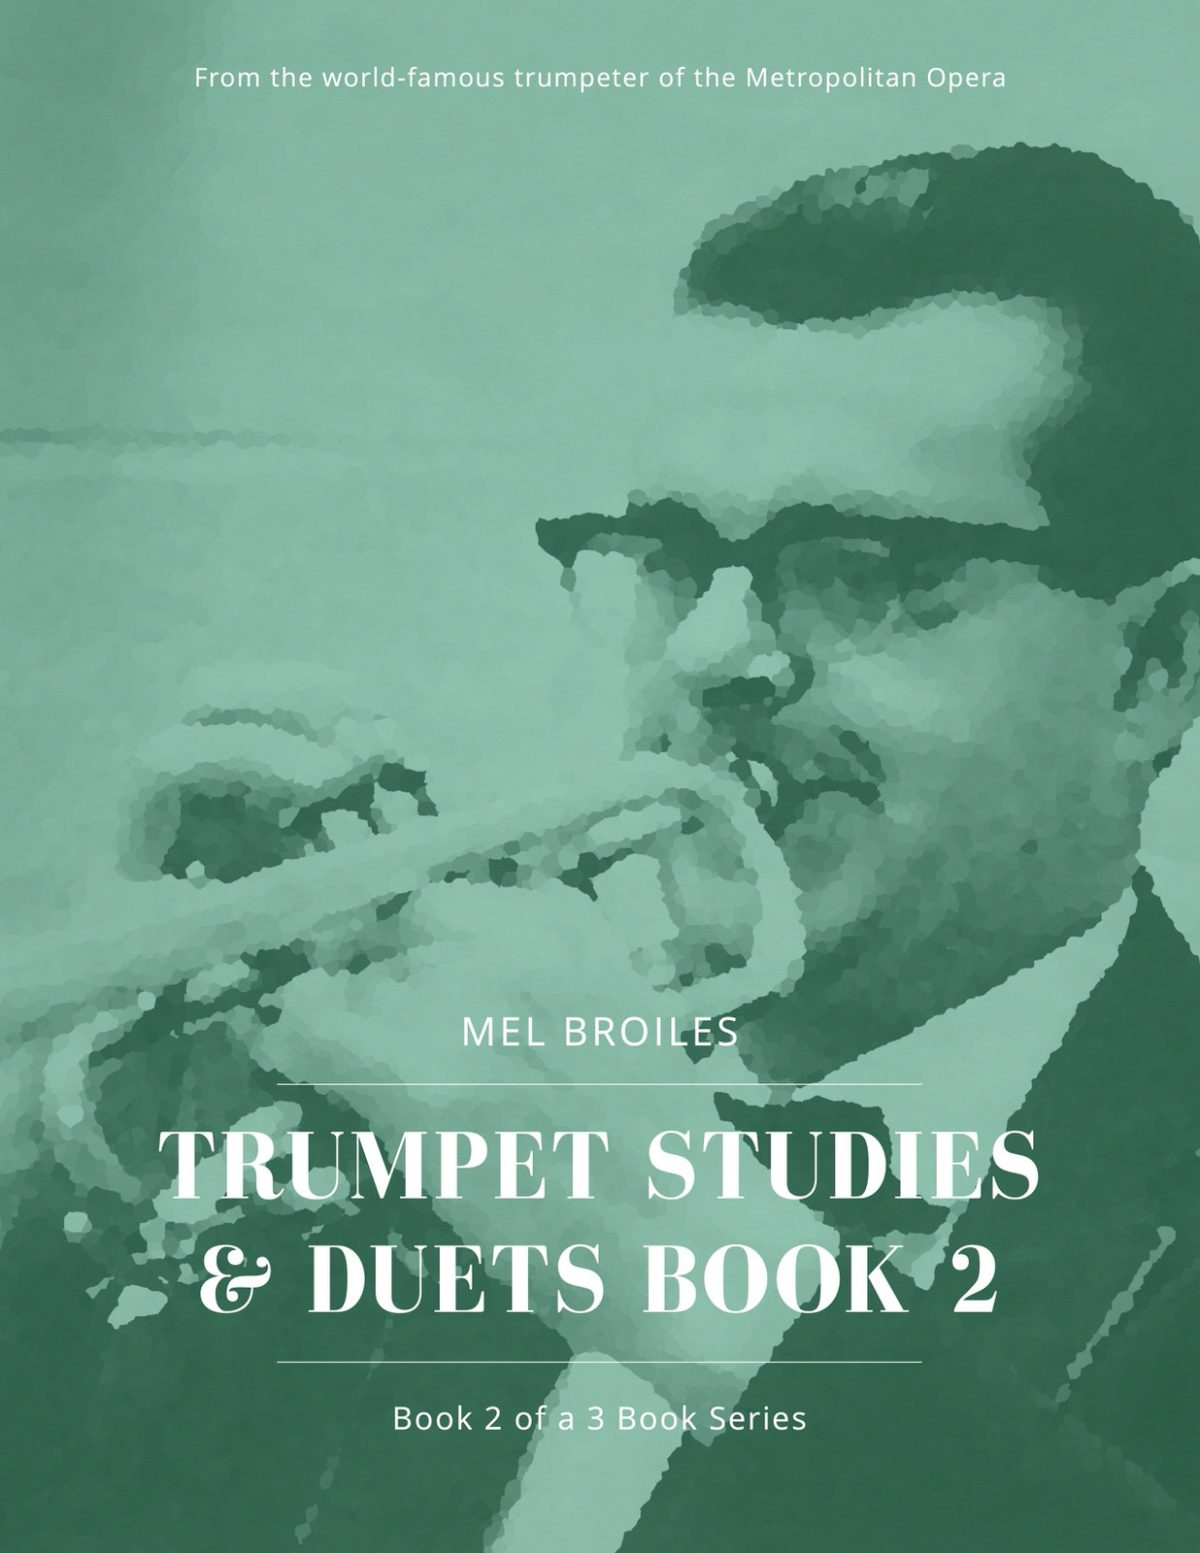 Broiles, Trumpet Studies and Duets Book 2-p01